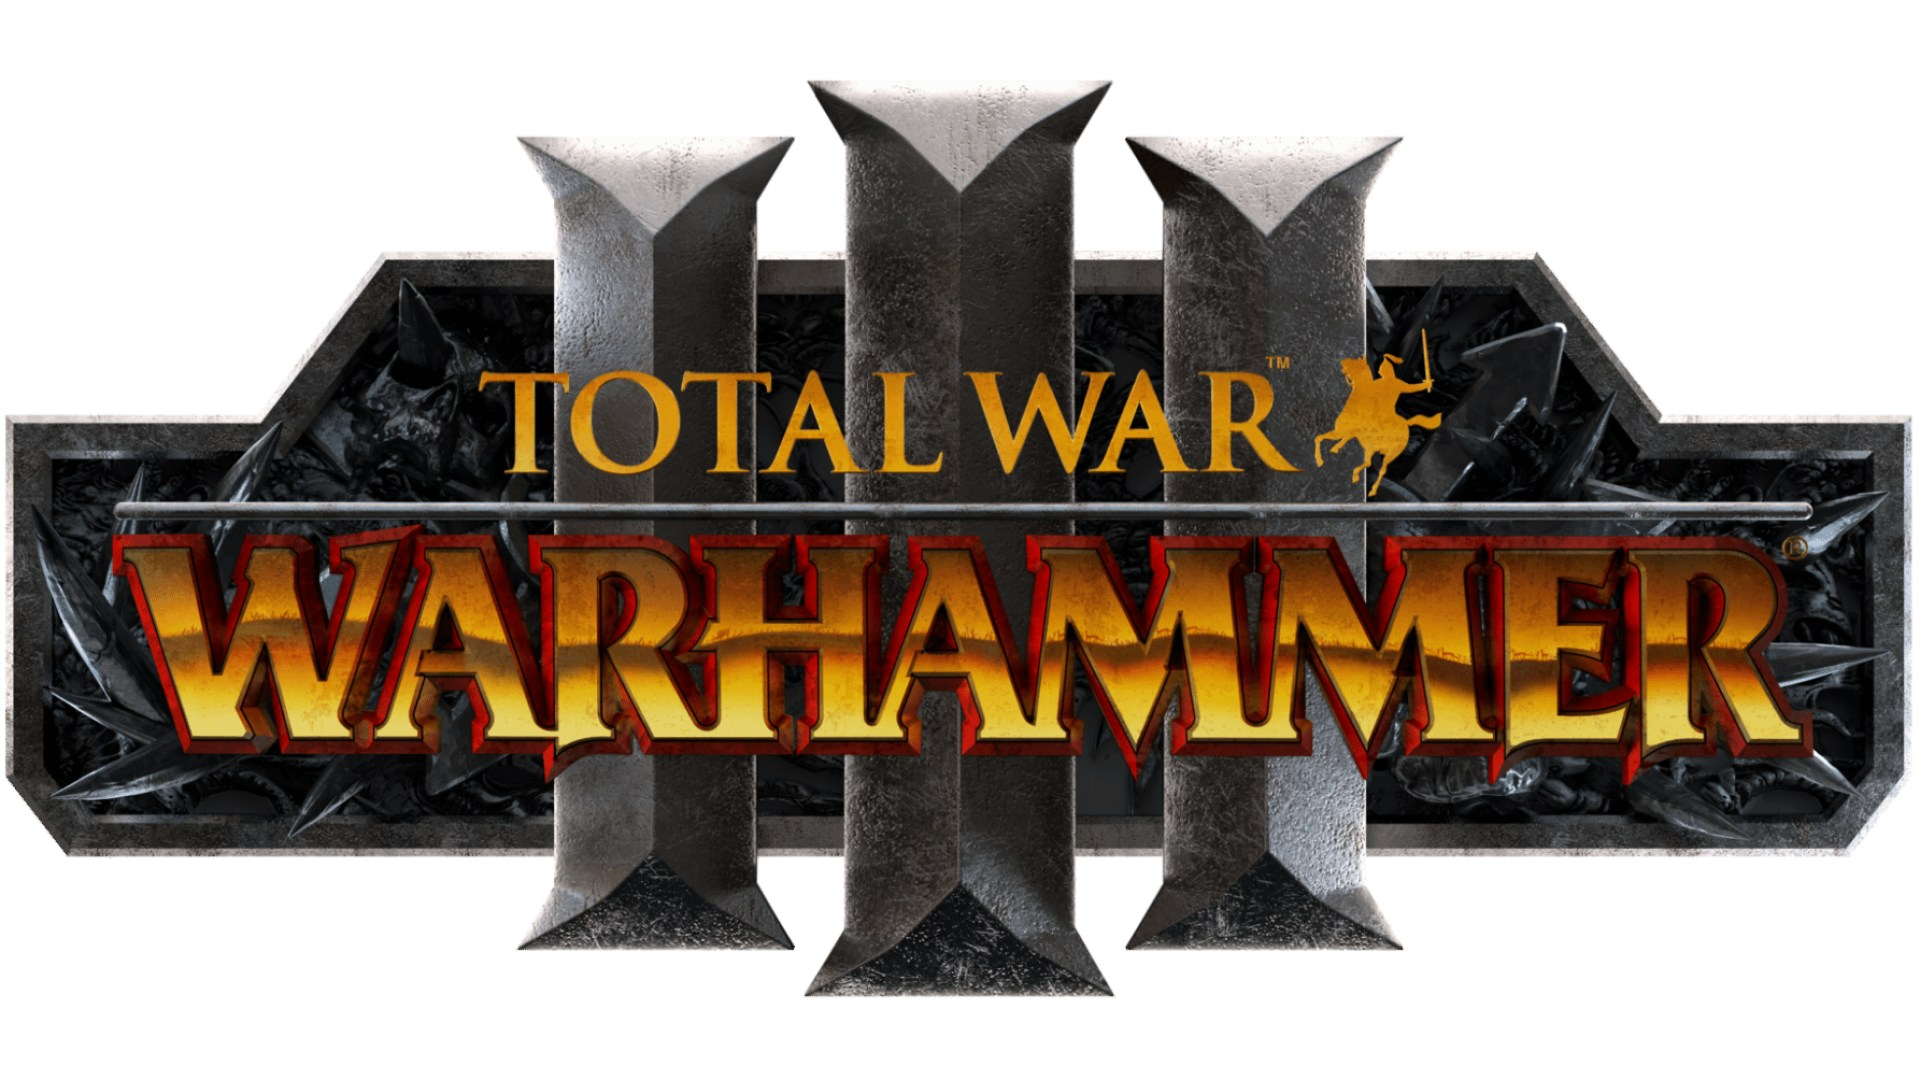 Pc, Strategiespiel, SEGA, Strategie, PC-Spiele, Echtzeitstrategie, pc-spiel, Total War, Warhammer, PC-Gaming, Creative Assembly, Total War: Warhammer, Total War: Warhammer 3